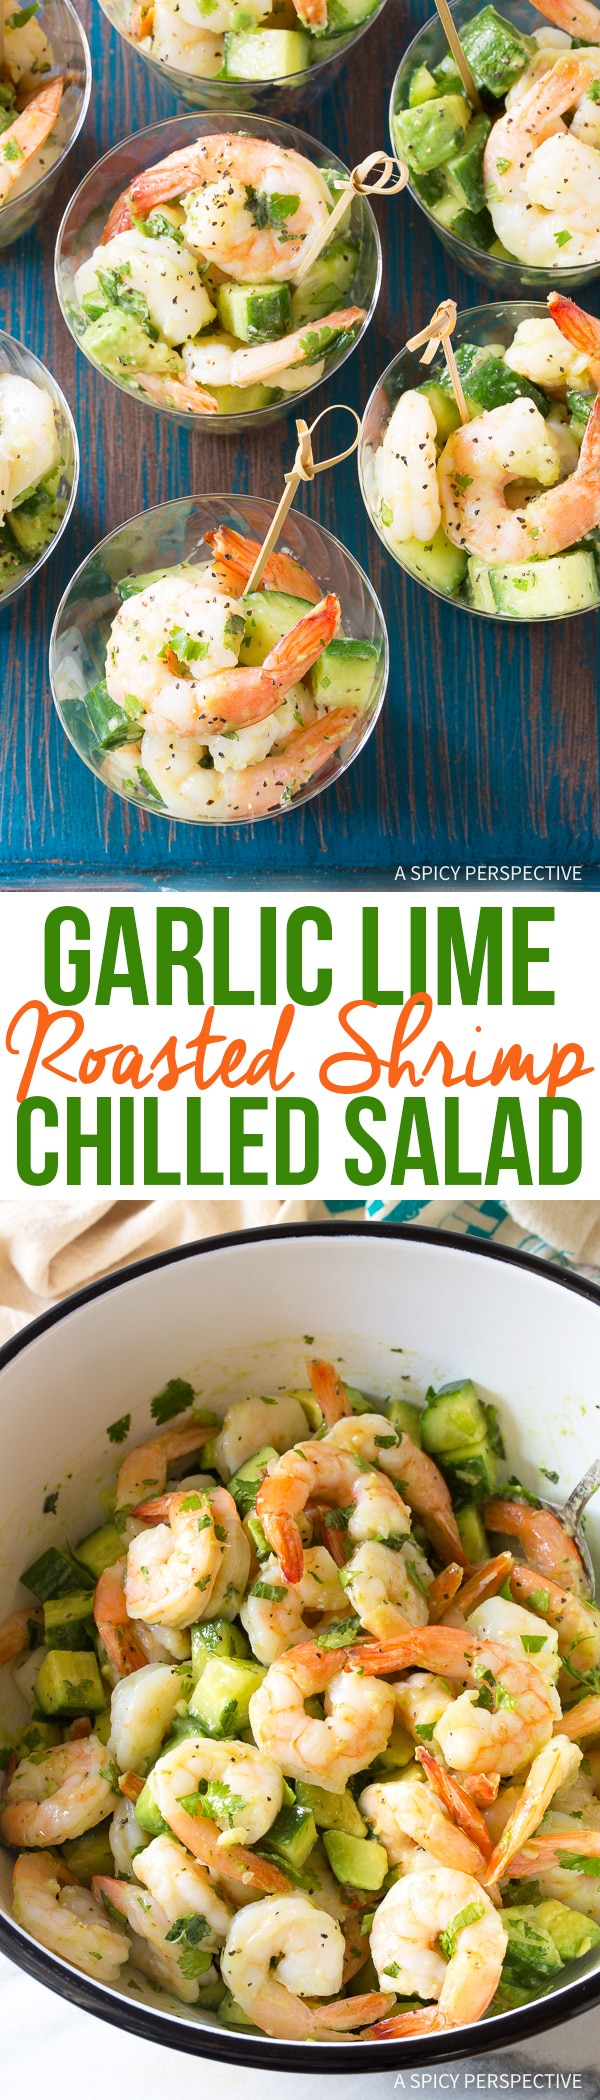 Chilled Garlic Lime Roasted Shrimp Salad Recipe for Spring and Summer!